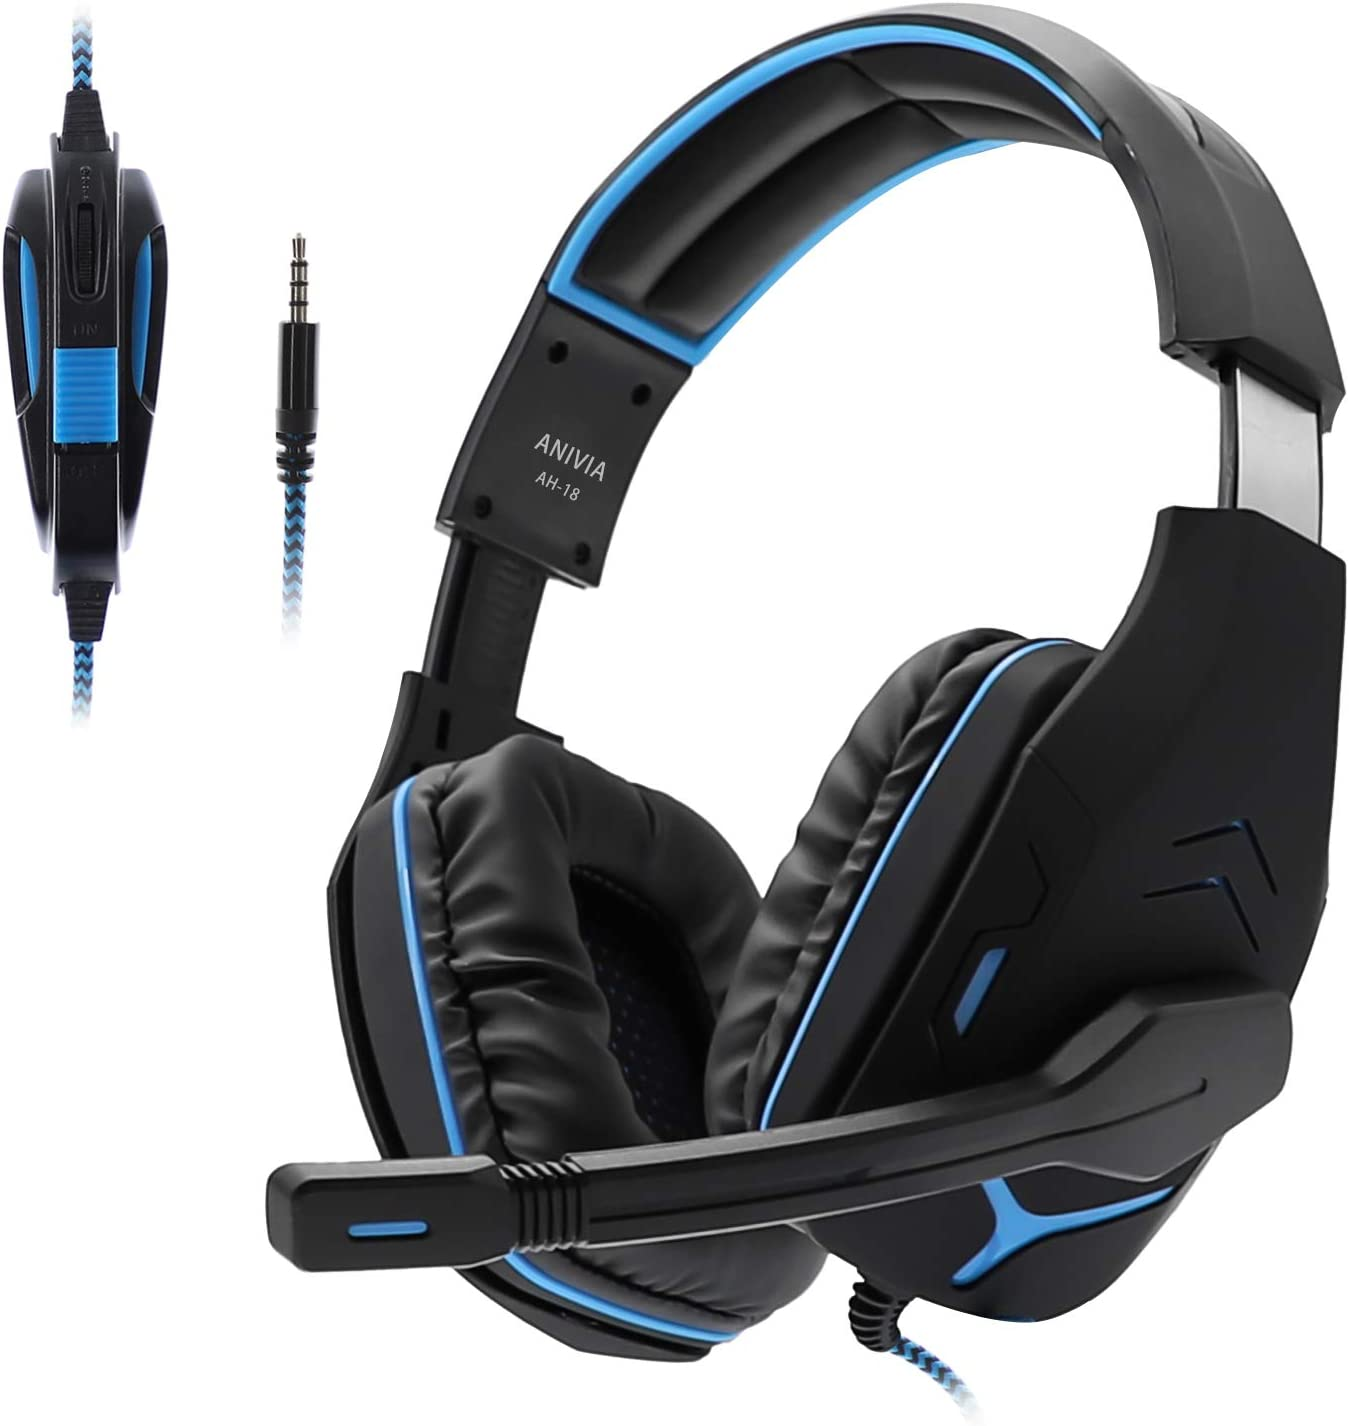 Gaming Headset for PS4,Anivia AH18 3.5mm Wired Noise Cancelling Headphone with Volume Control Mic Soft Memory Earmuffs for PC Laptop Mac New Xbox one Black Blue